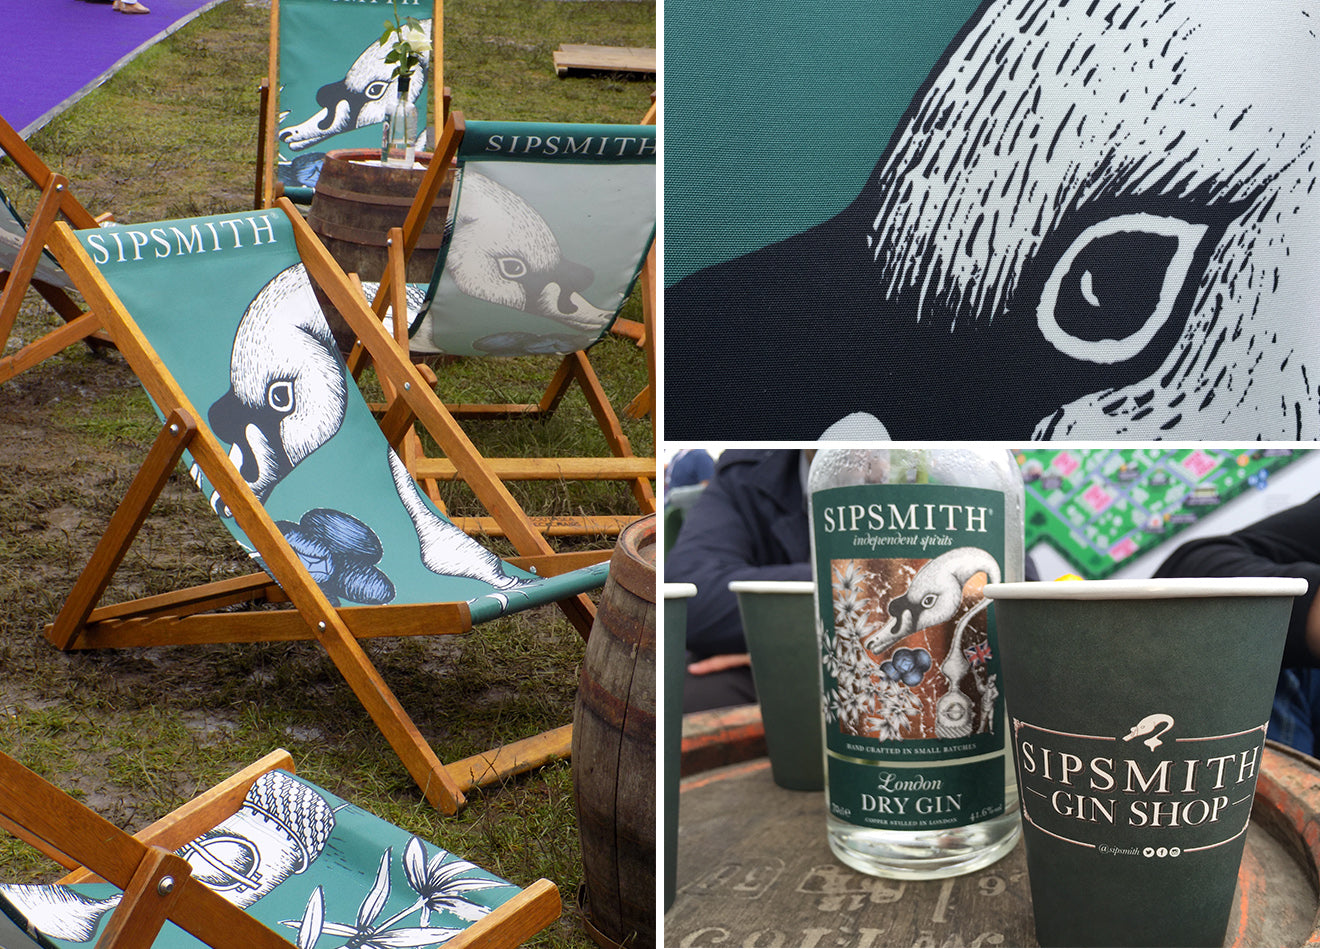 Sipsmith Gin London deckchairs at the Taste of London festival